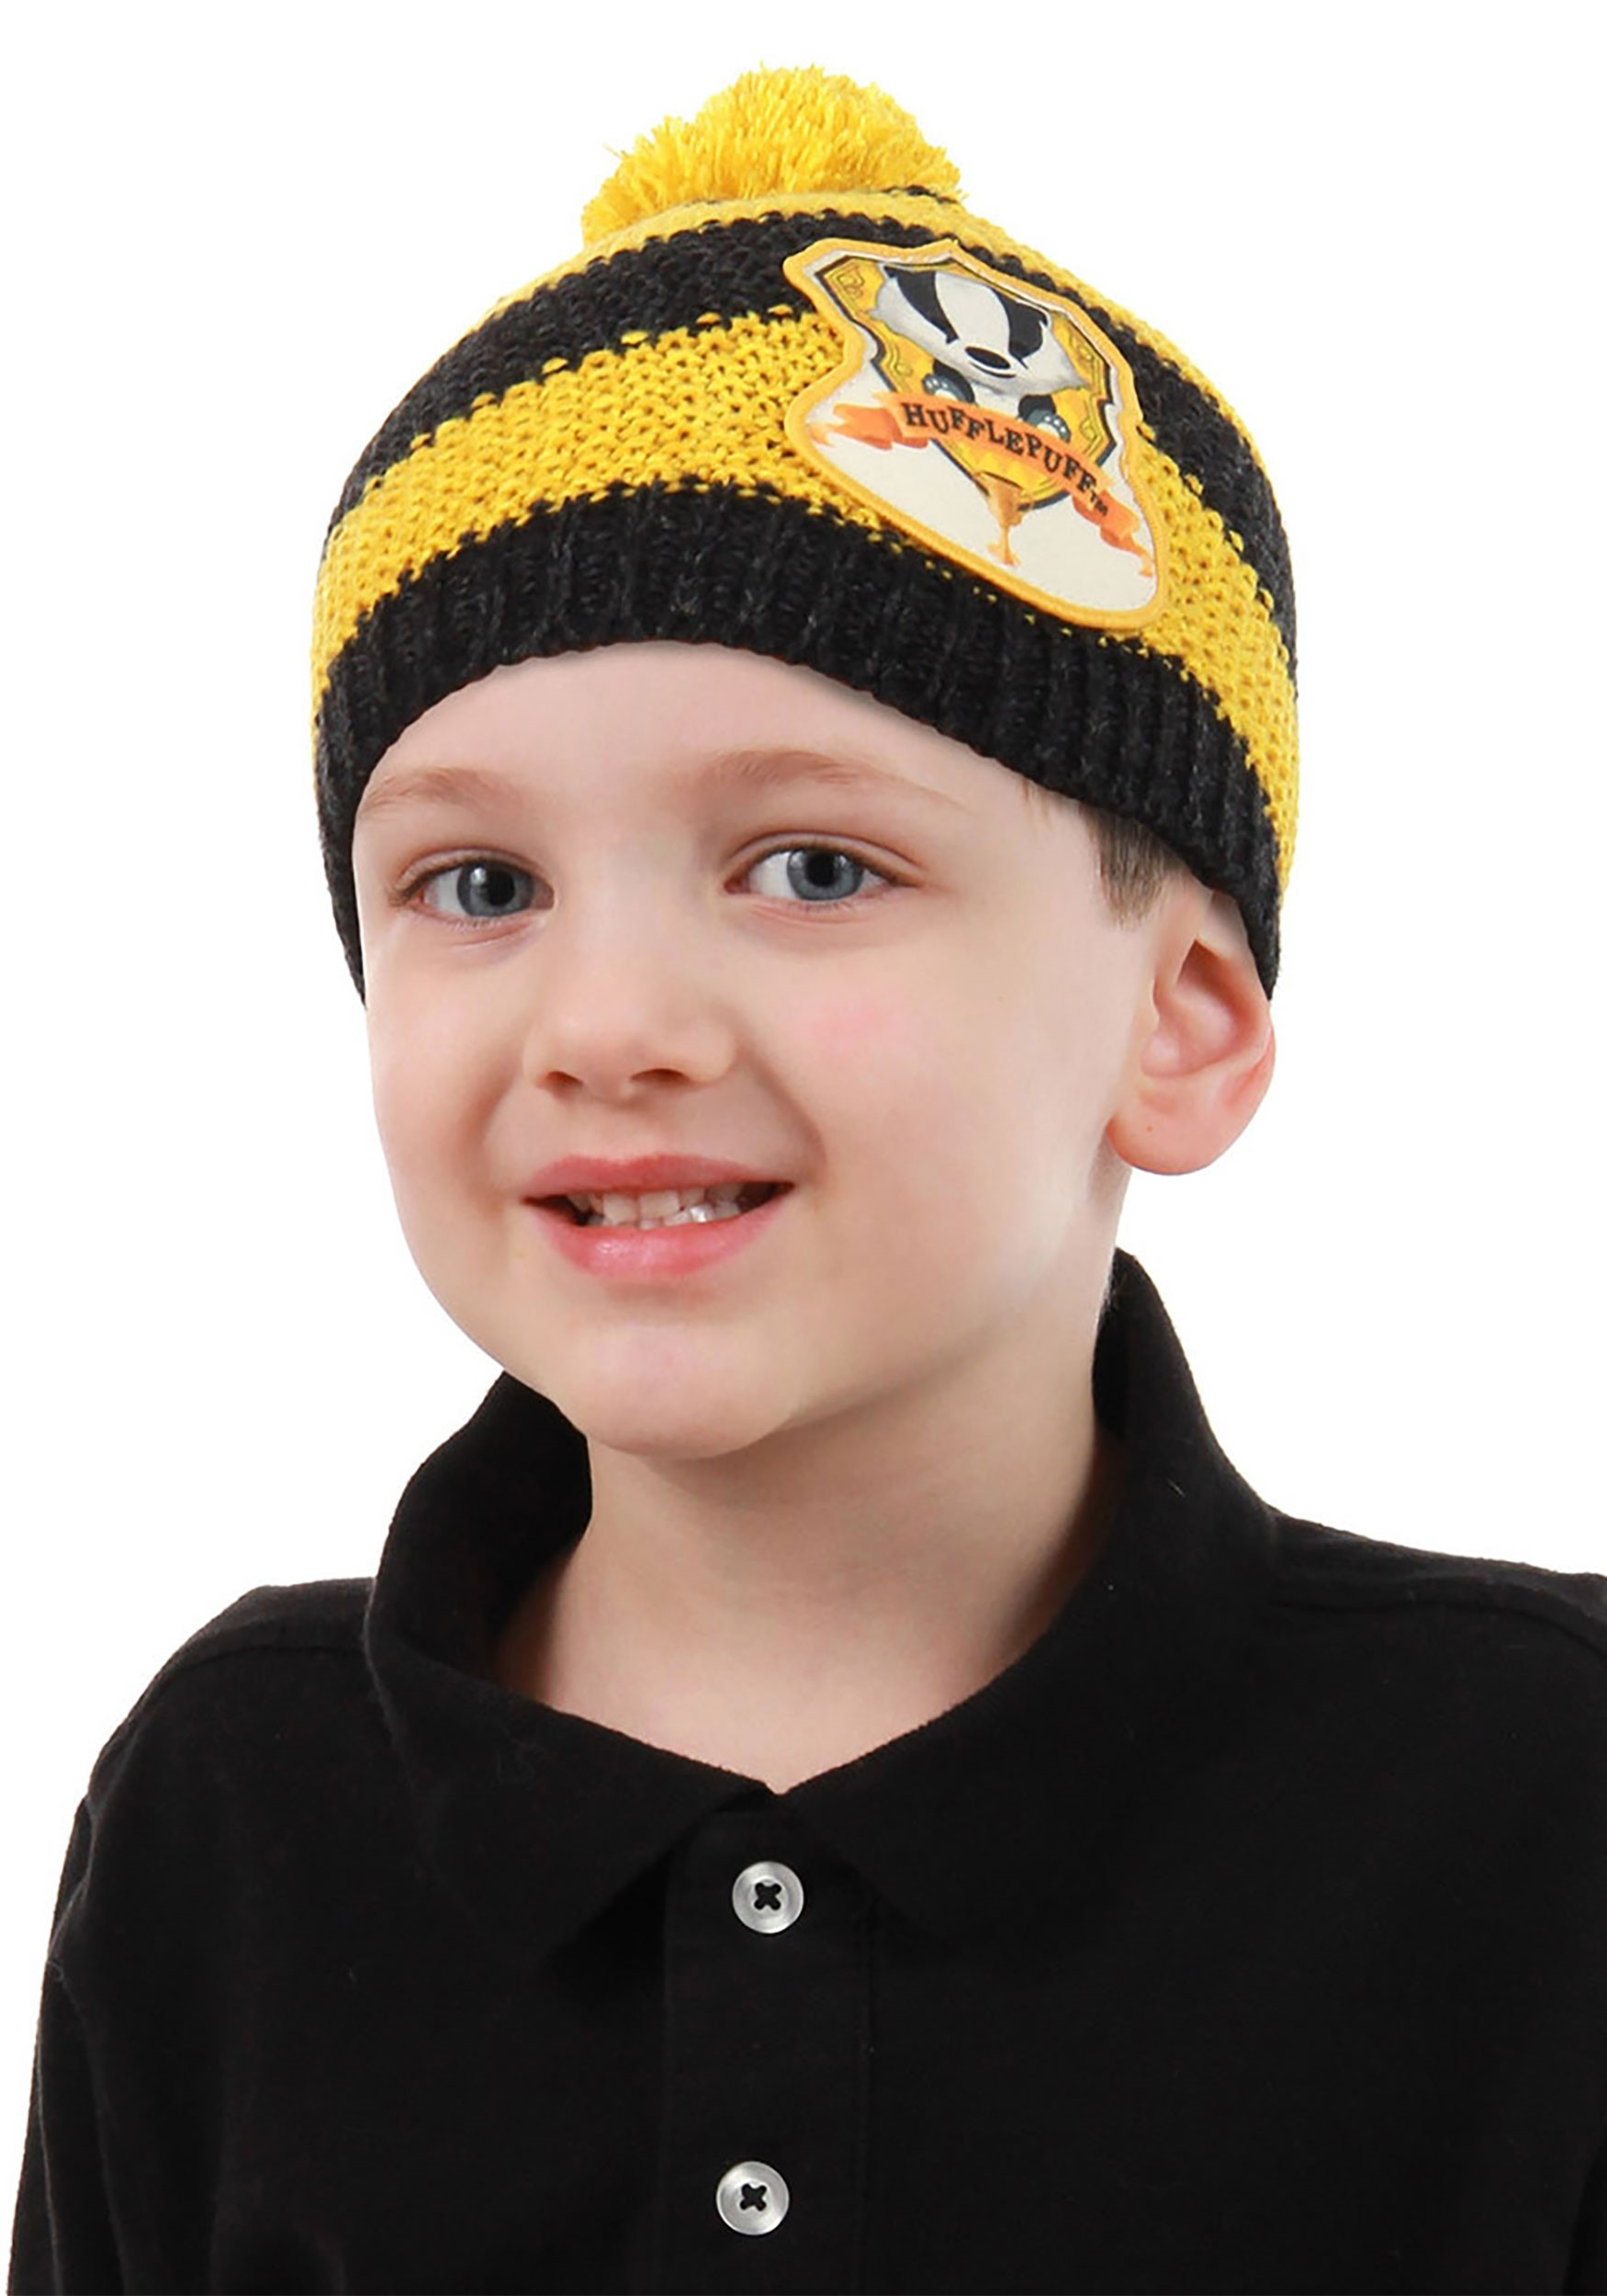 Hufflepuff Knit Warm Beanie for Toddlers